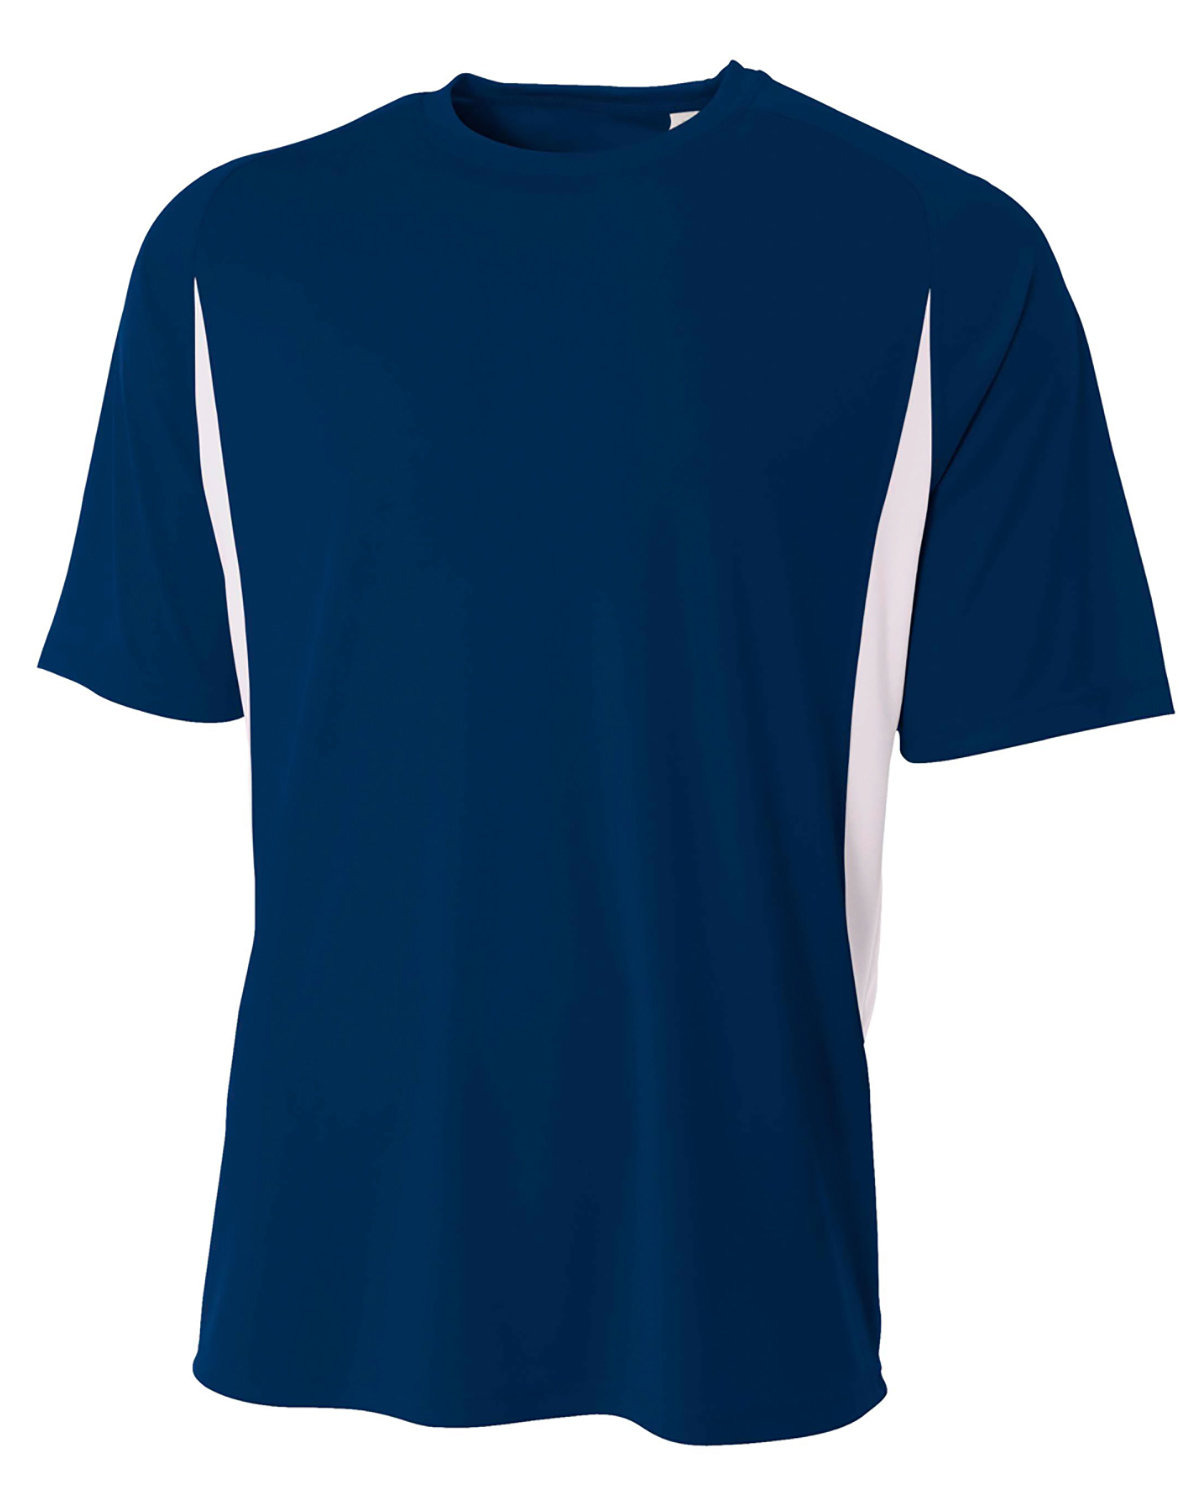 A4 Youth Cooling Performance Color Blocked T-Shirt NAVY/ WHITE